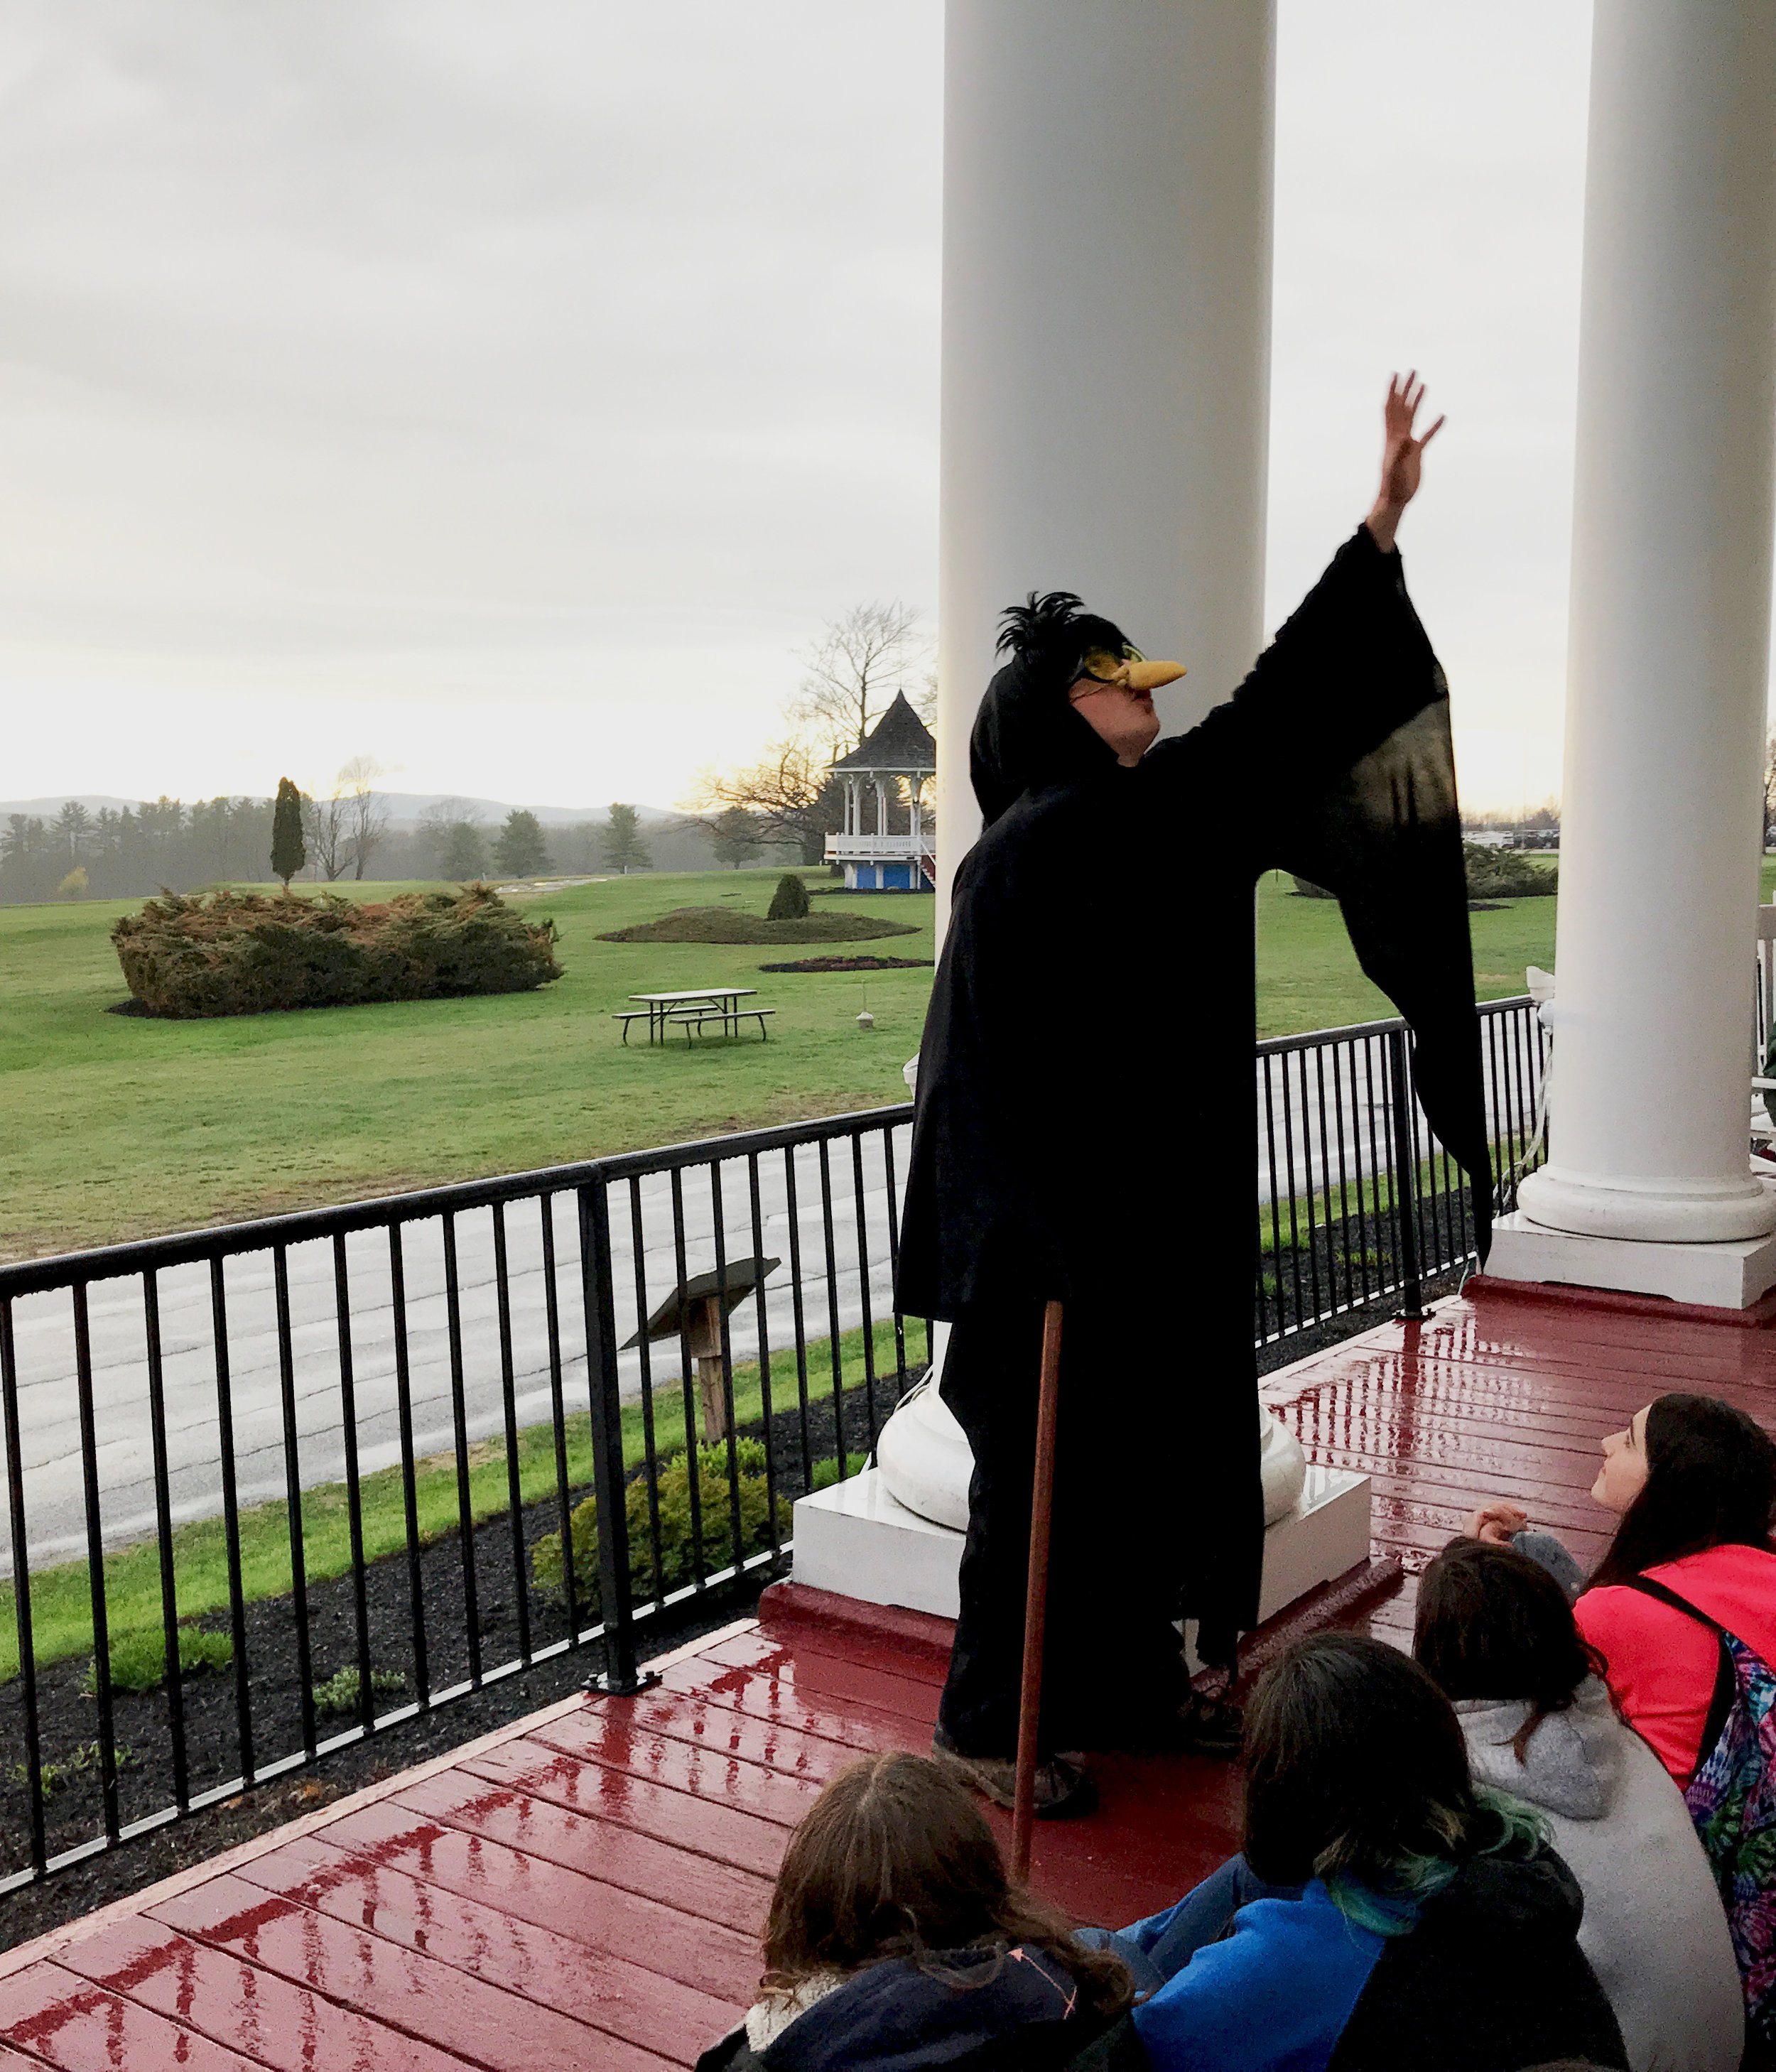 A preview (a pre-lesson look at what students are about to encounter on their lesson) takes place on the porch of The Maine Inn at the Poland Spring Resort, overlooking Maine's western foothills.